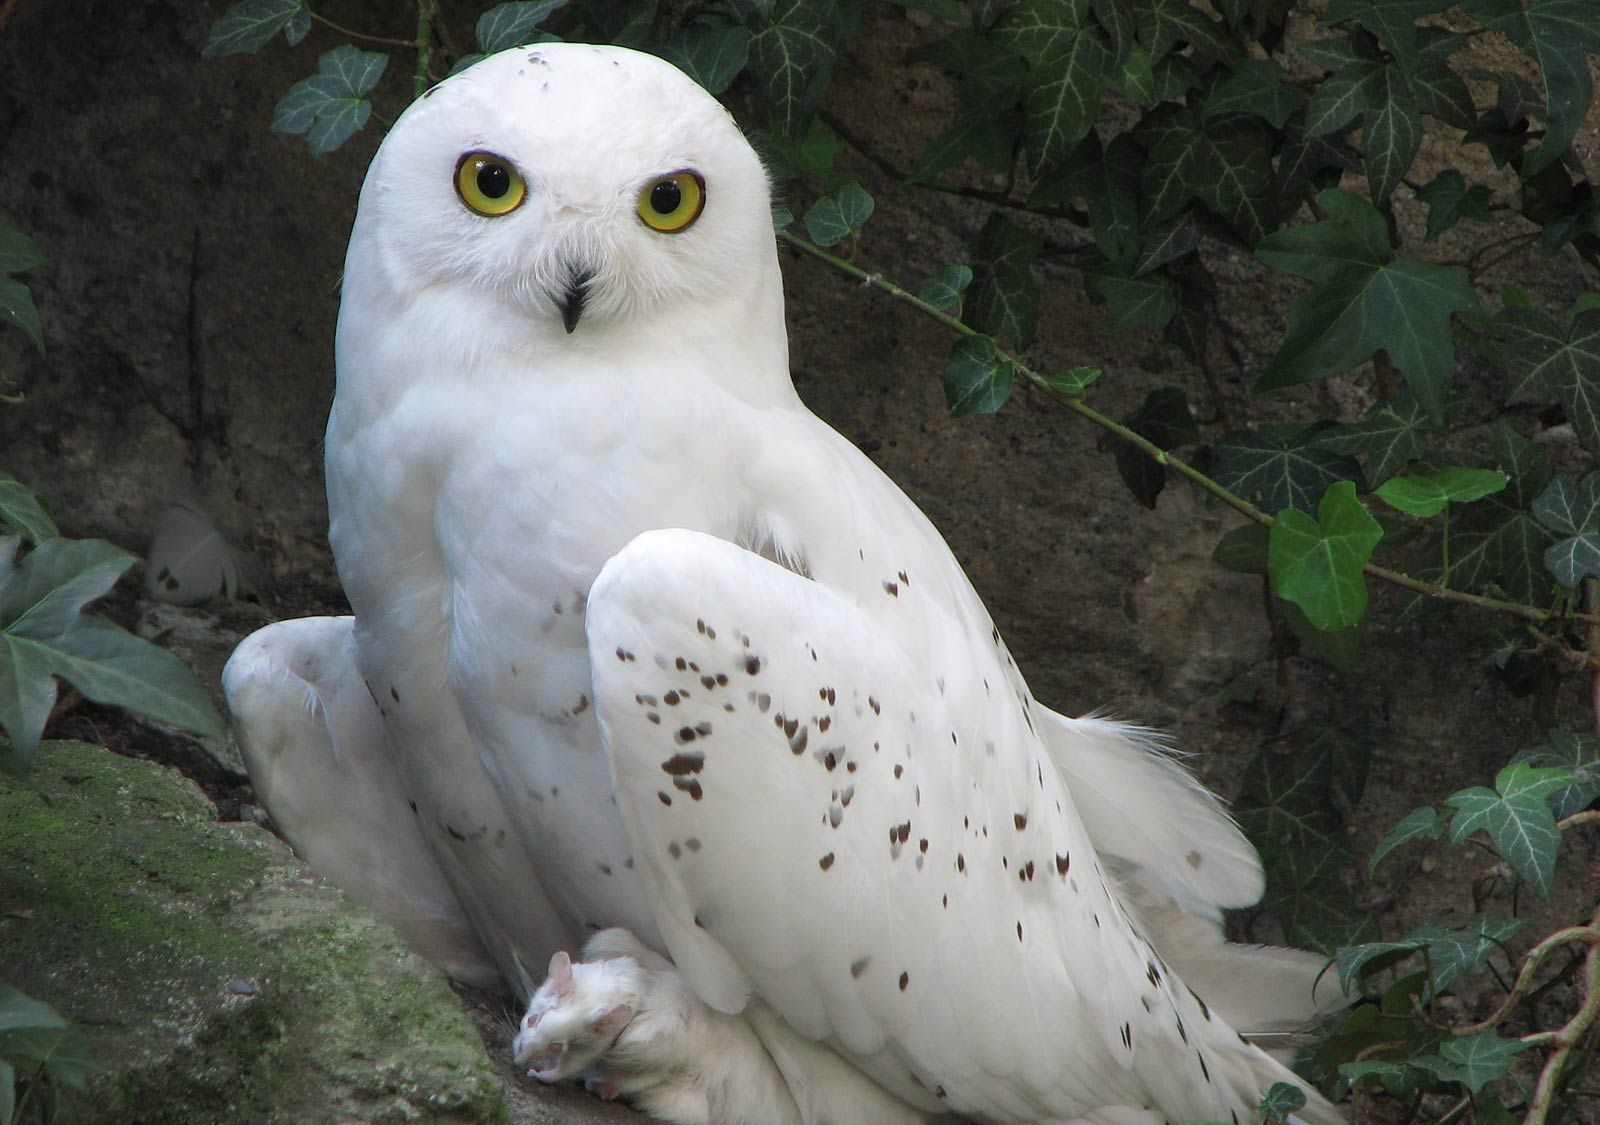 Free Snowy Owl Wallpaper download - Animals Town